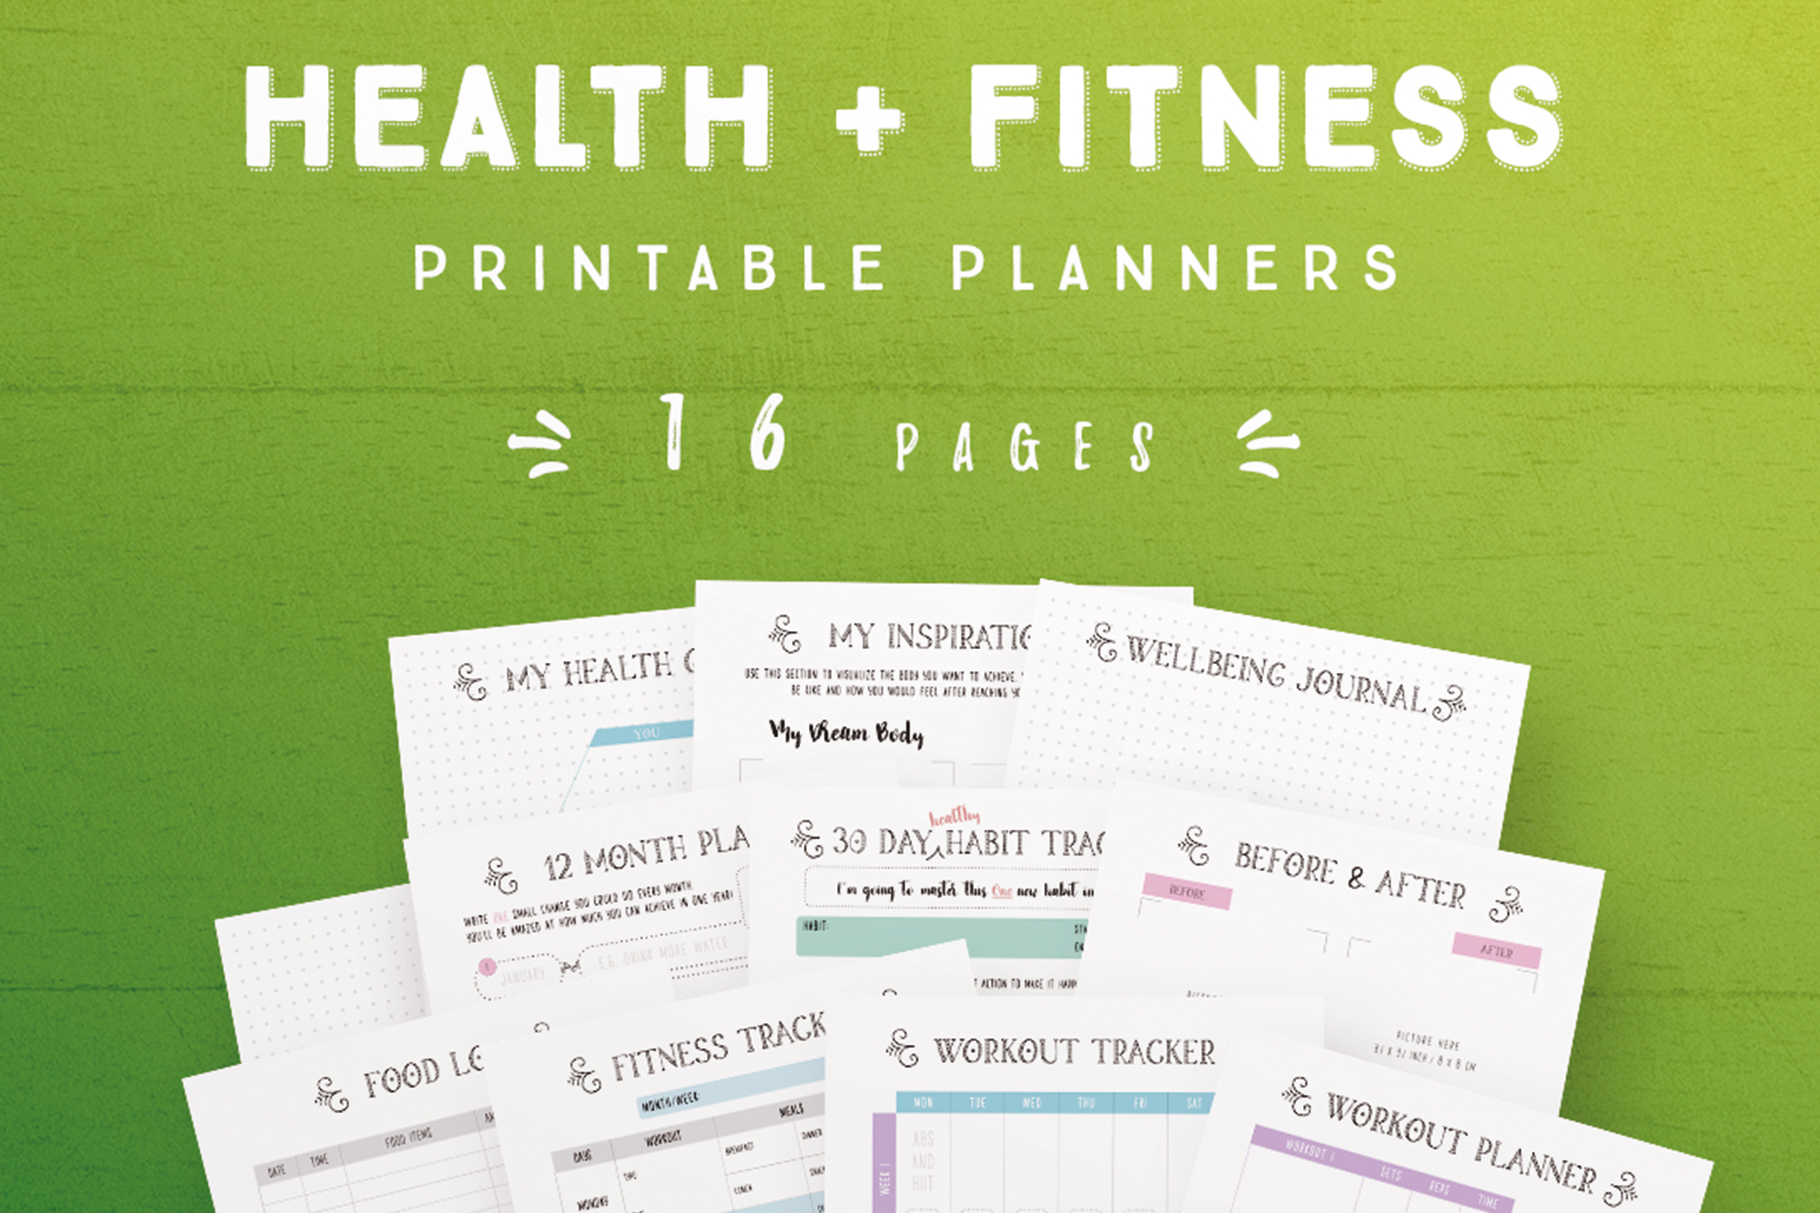 Health and Fitness Printable Planners - 16 Pages example image 1